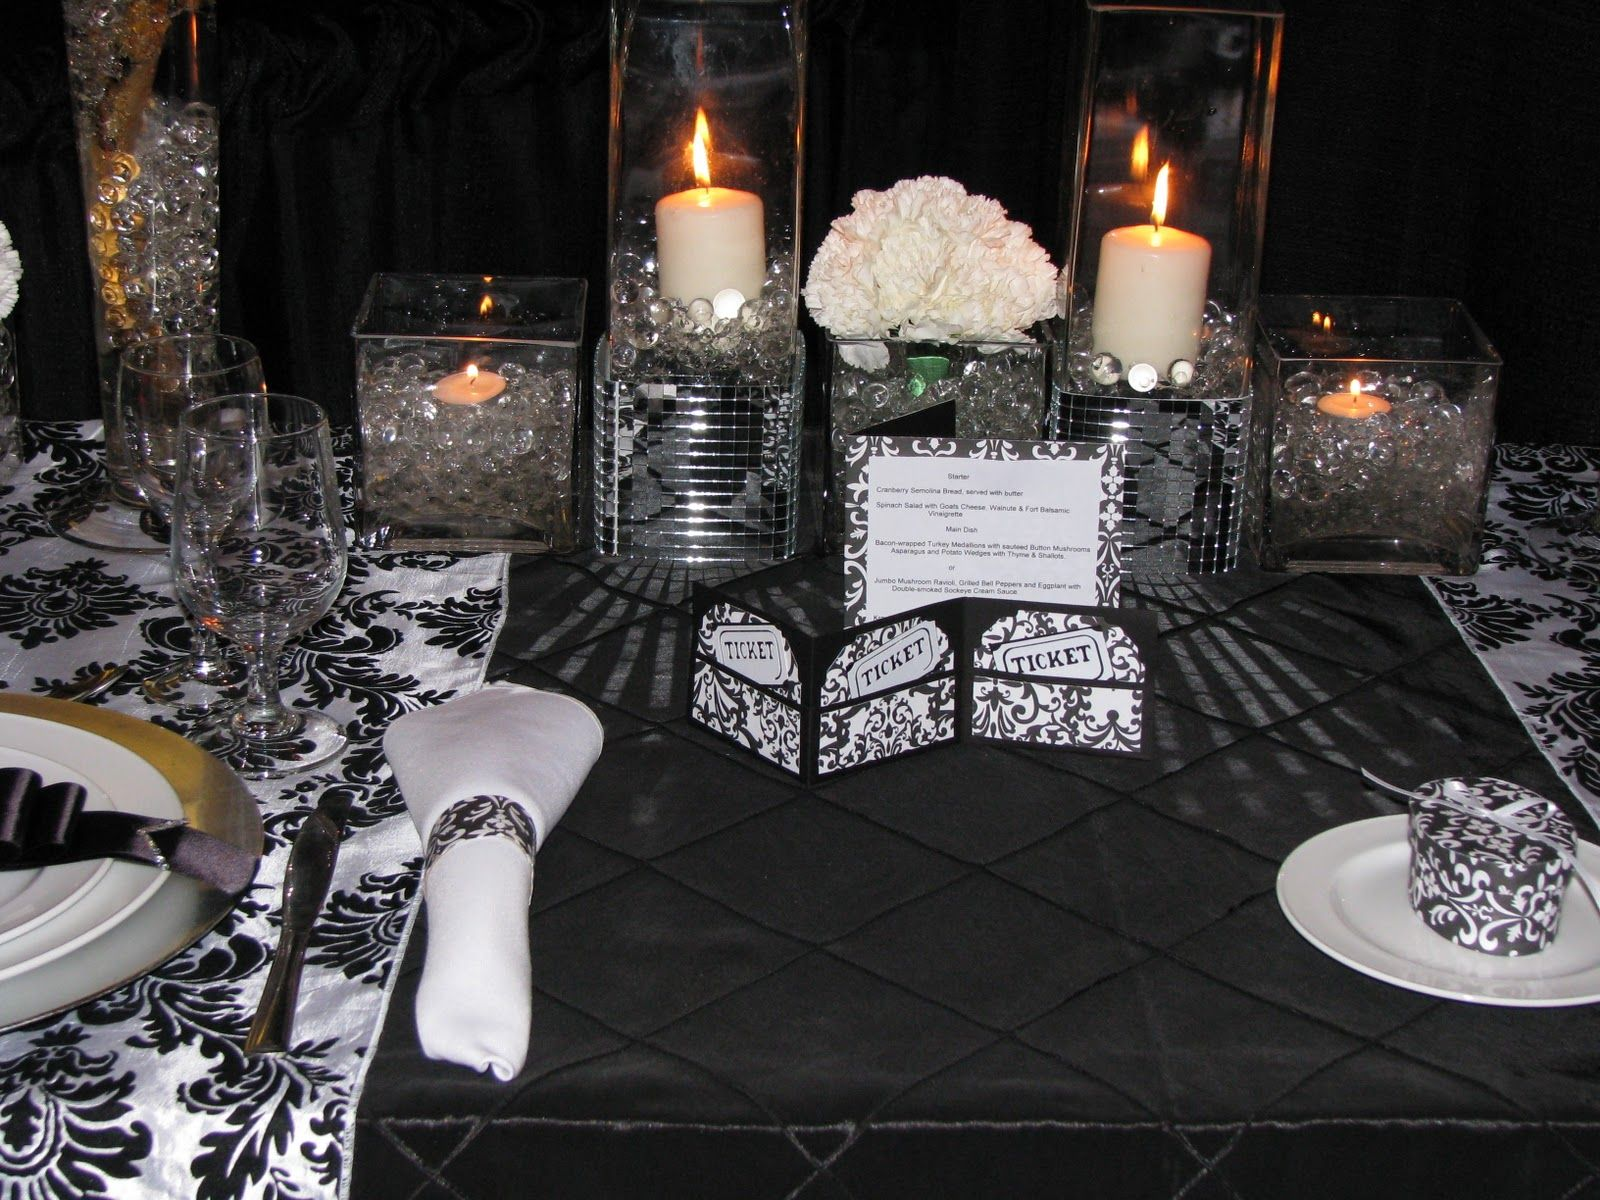 black and white and bling table setting | Black pintuck taffeta table covering with black u0026 : black and silver table settings - pezcame.com